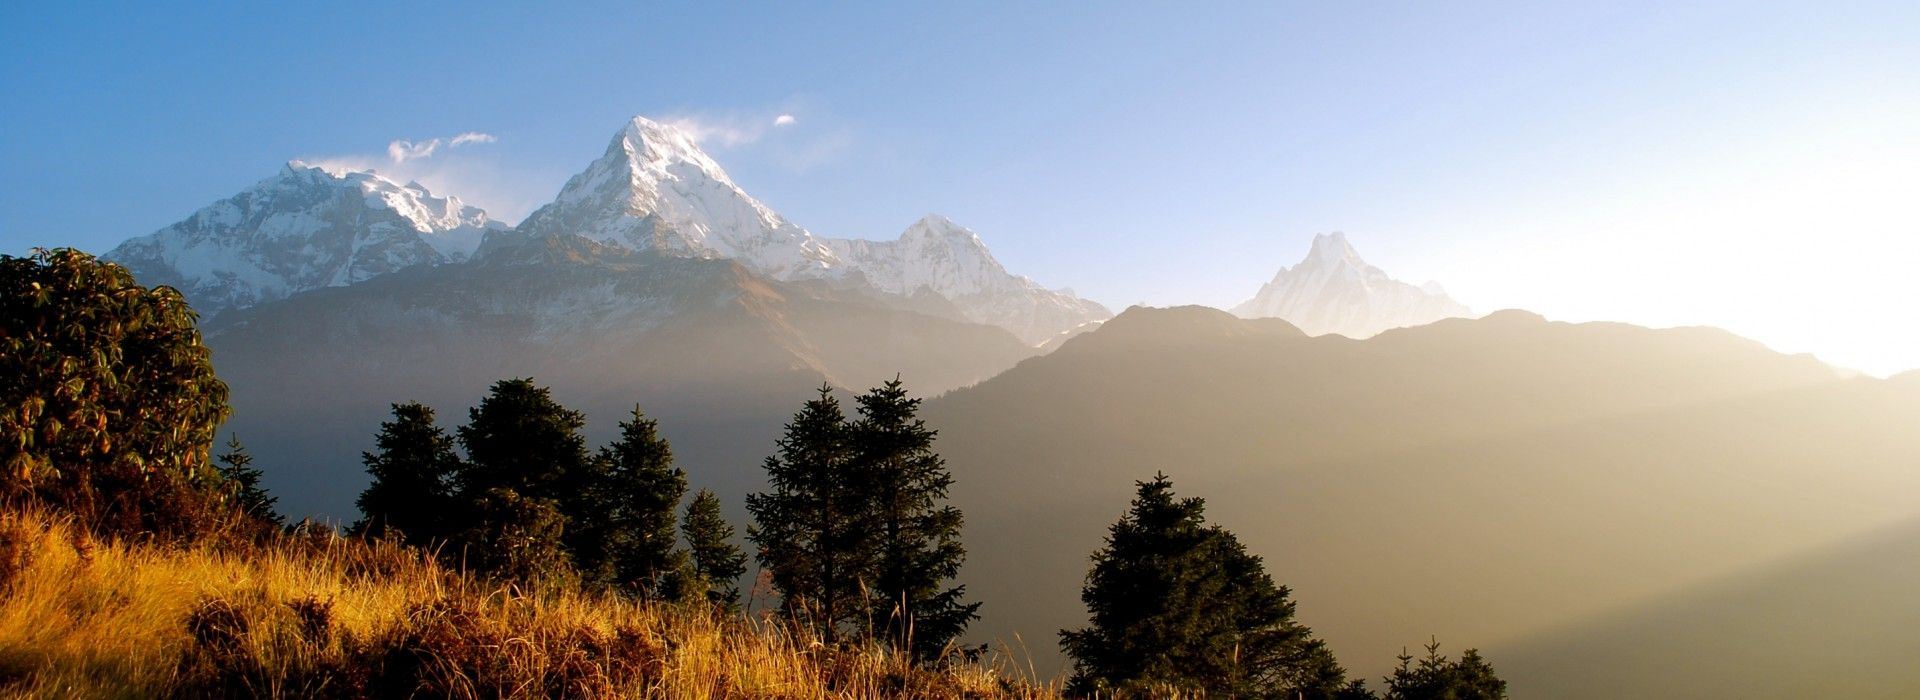 Trekking Tours in Annapurna Region